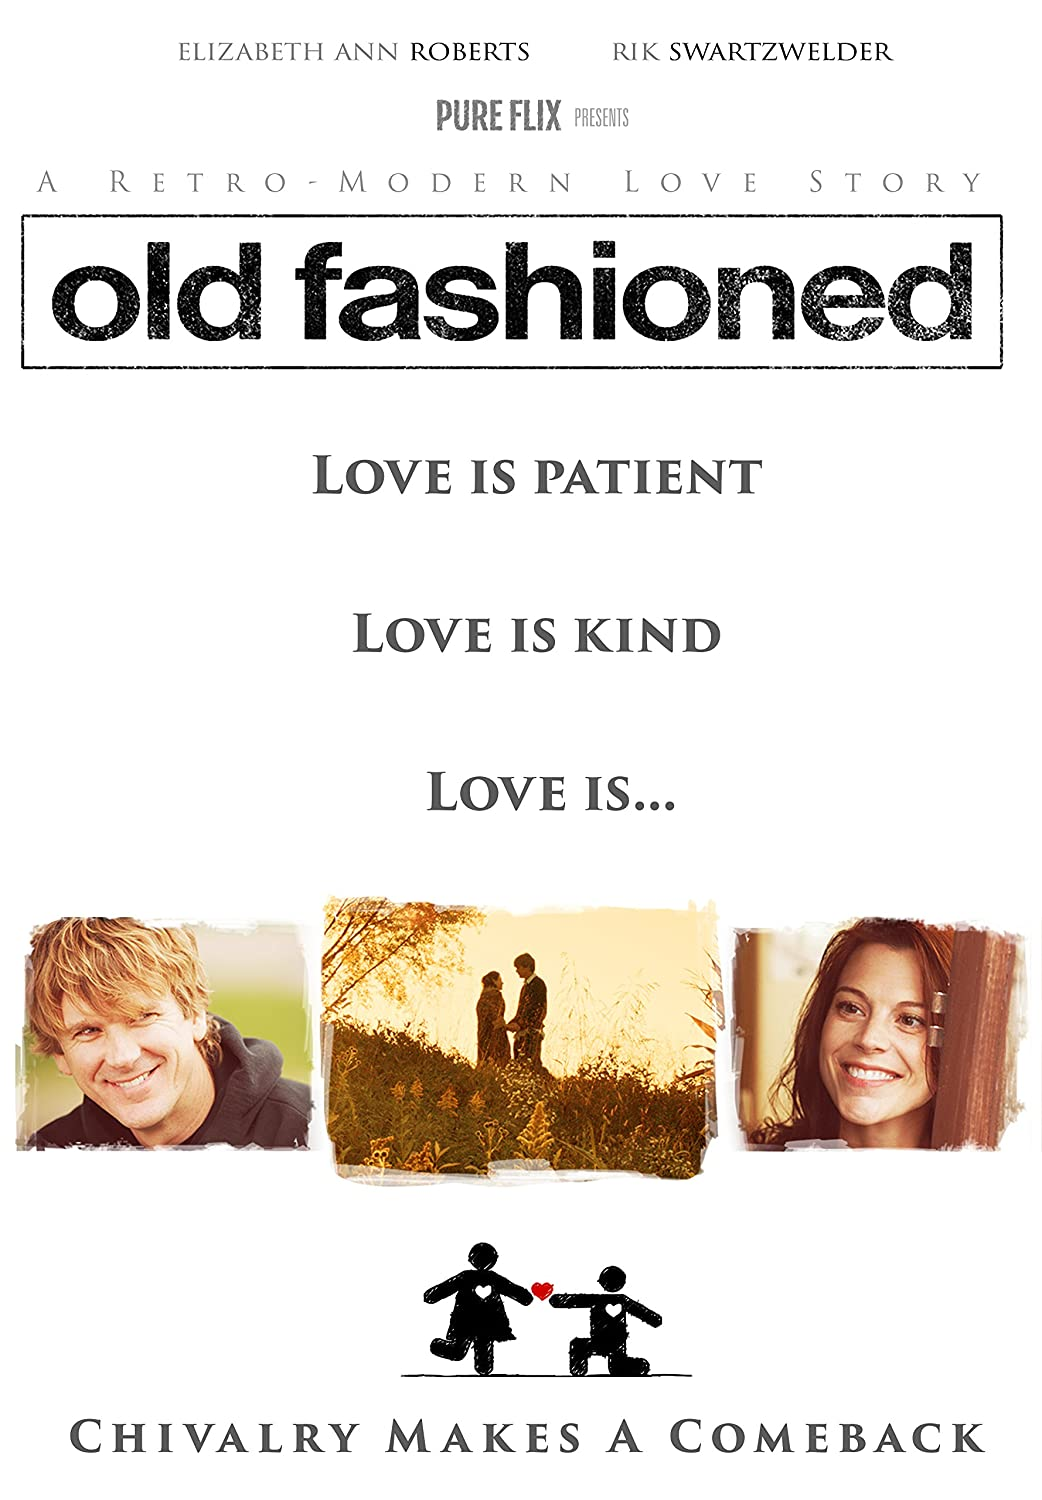 old fashioned - dvd image